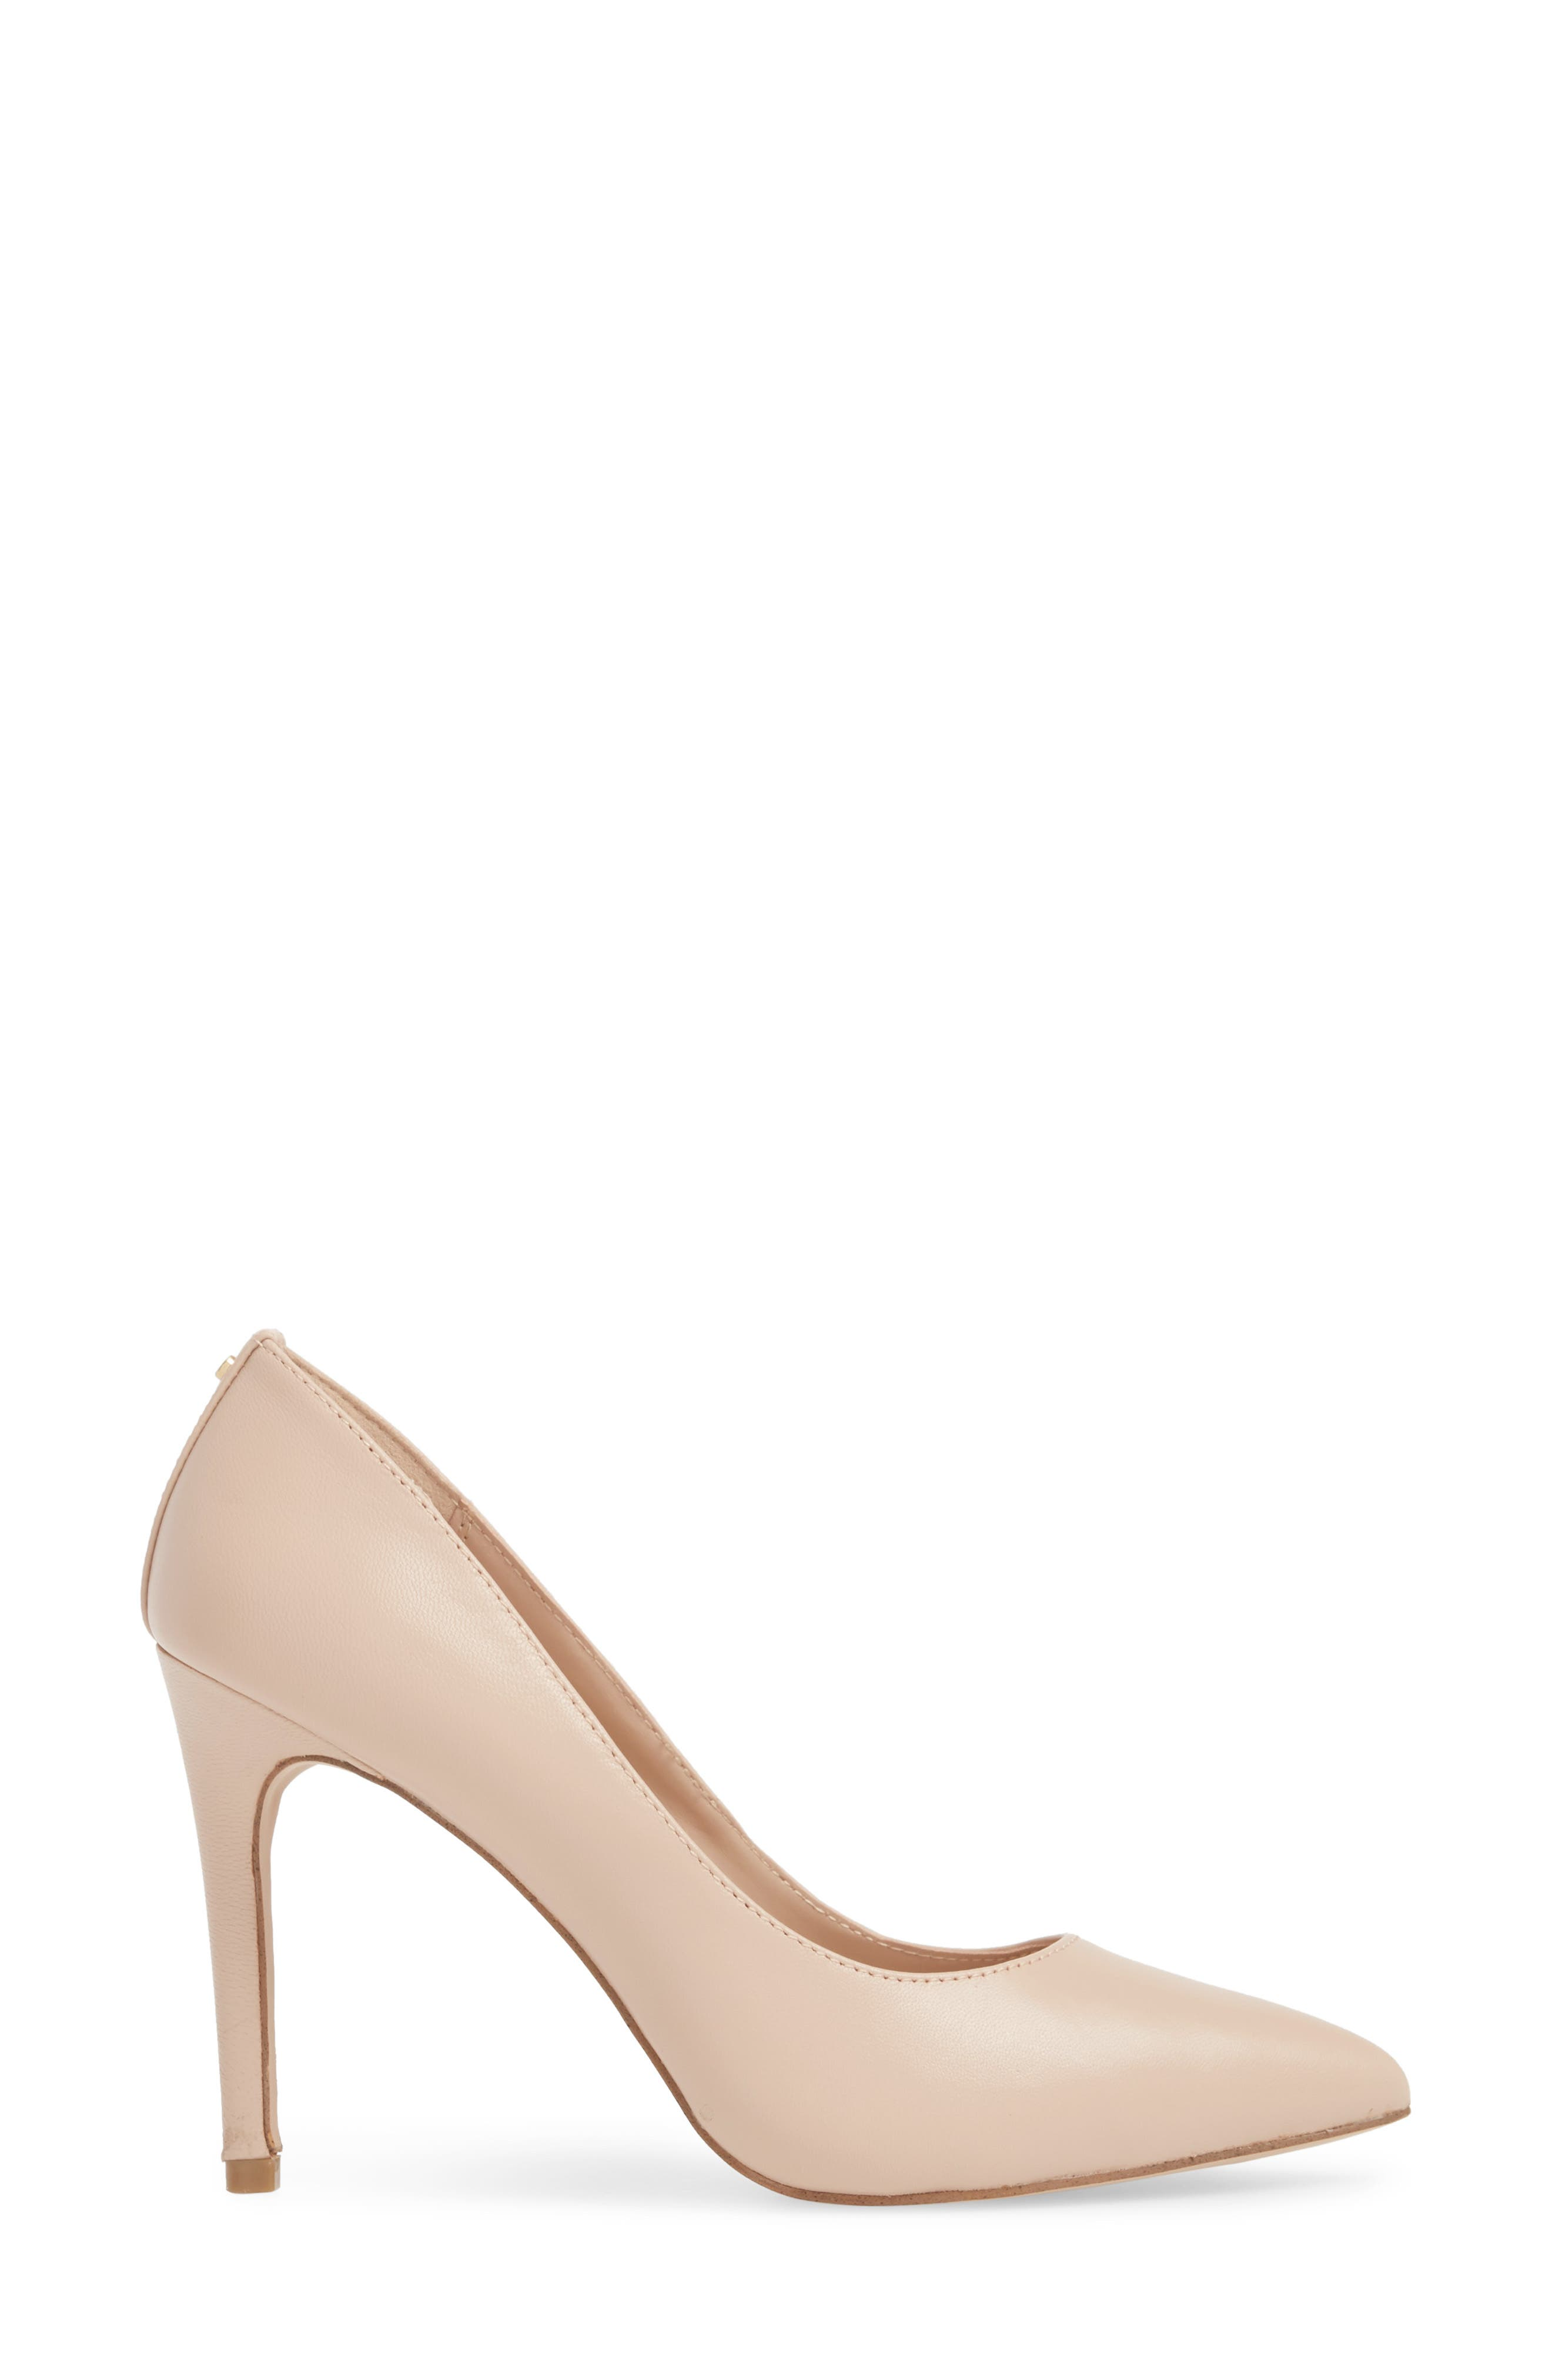 BCBG,                             Heidi Pump,                             Alternate thumbnail 3, color,                             SHELL LEATHER